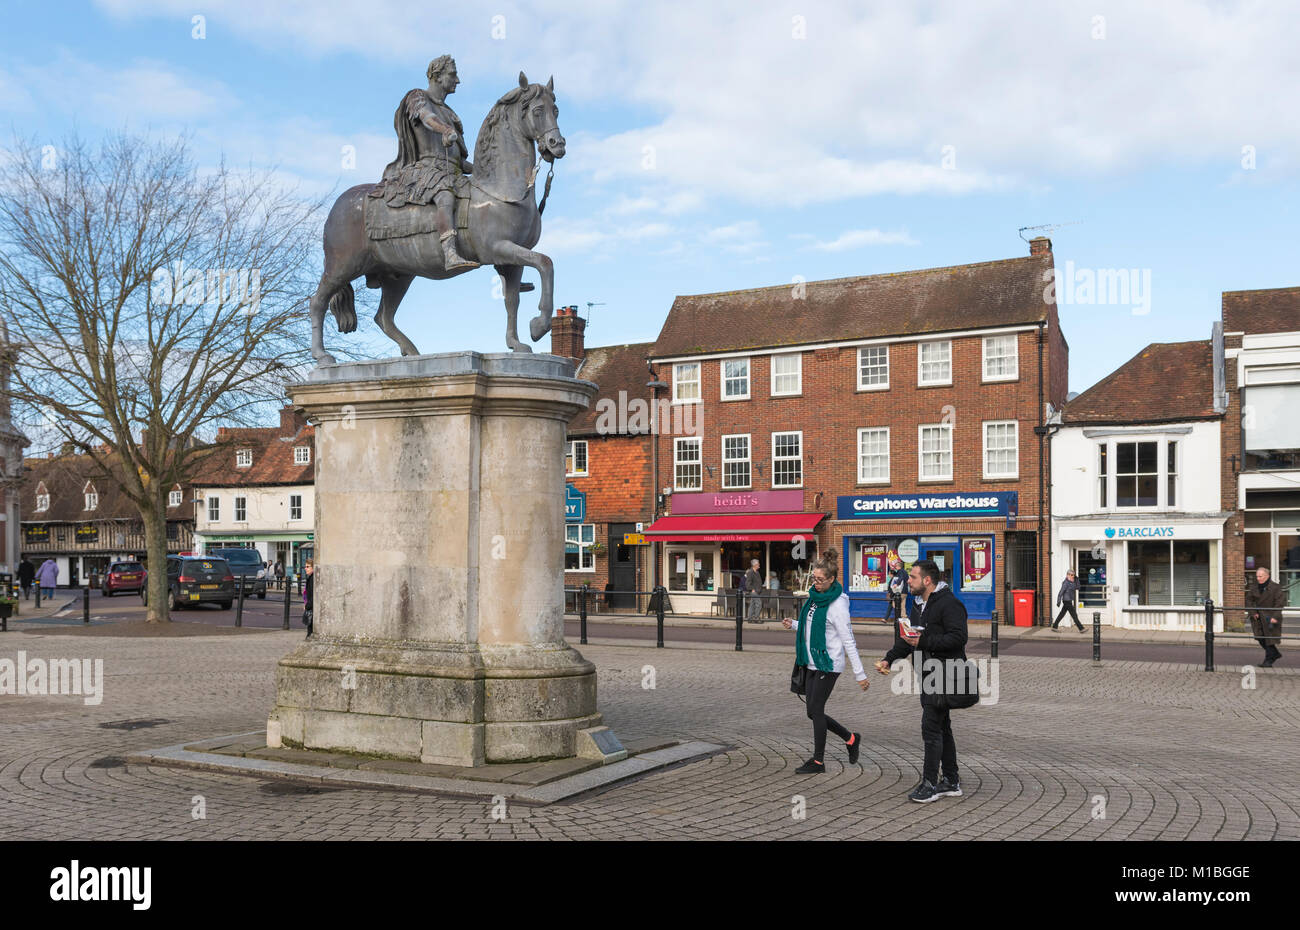 Statue of King William III on a horse on a stone plinth in the town square of Petersfield, Hampshire, England, UK. - Stock Image